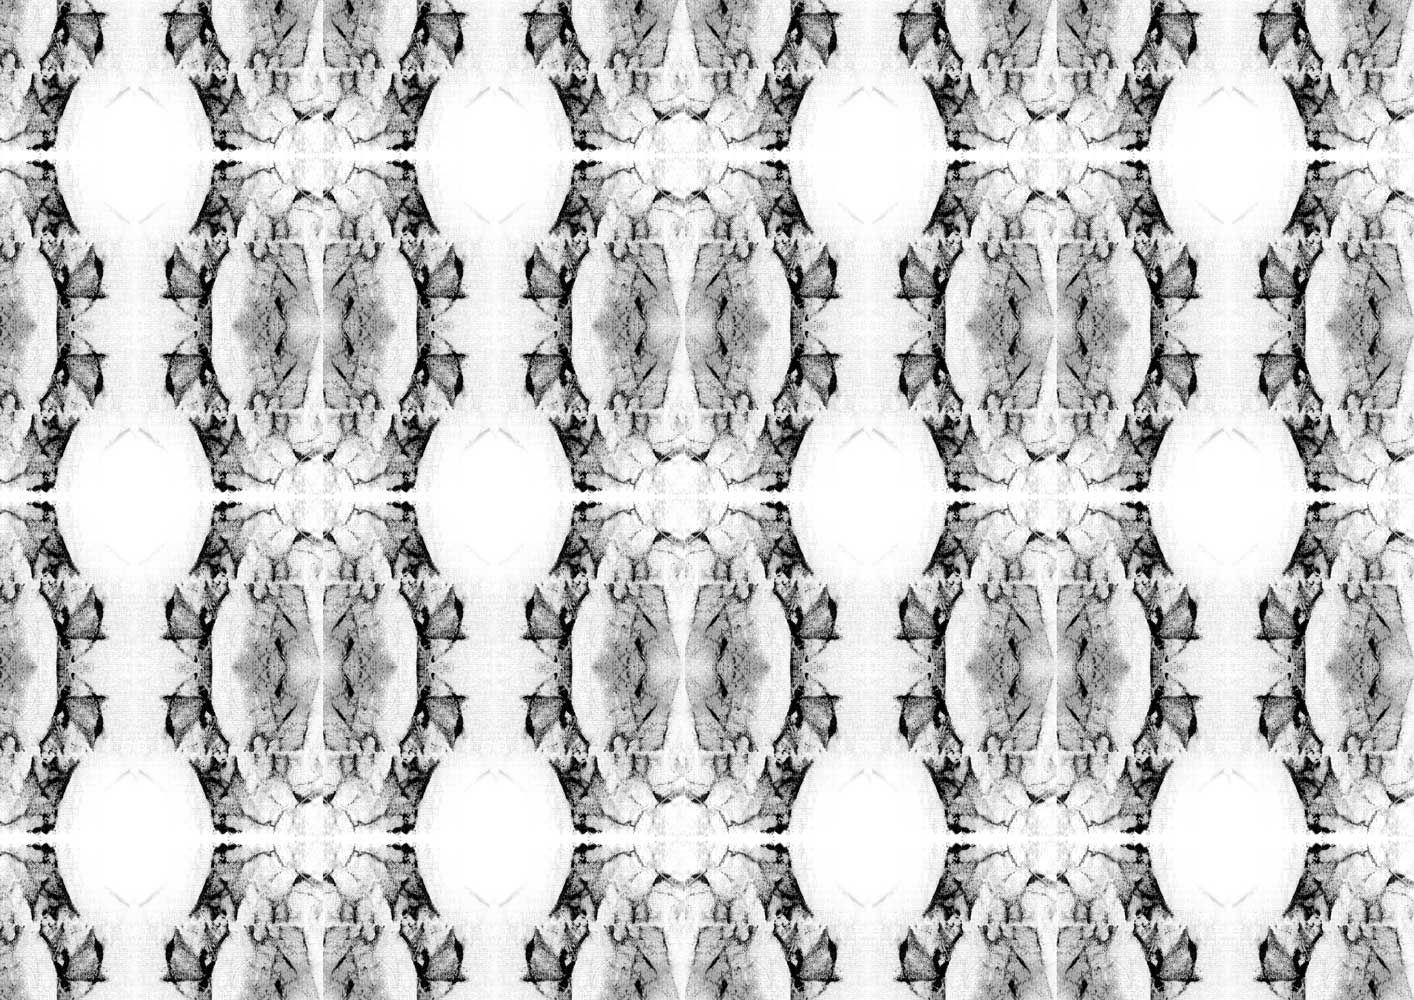 Detailed symmetrical print with wavy structure by Maximiliane Tilch